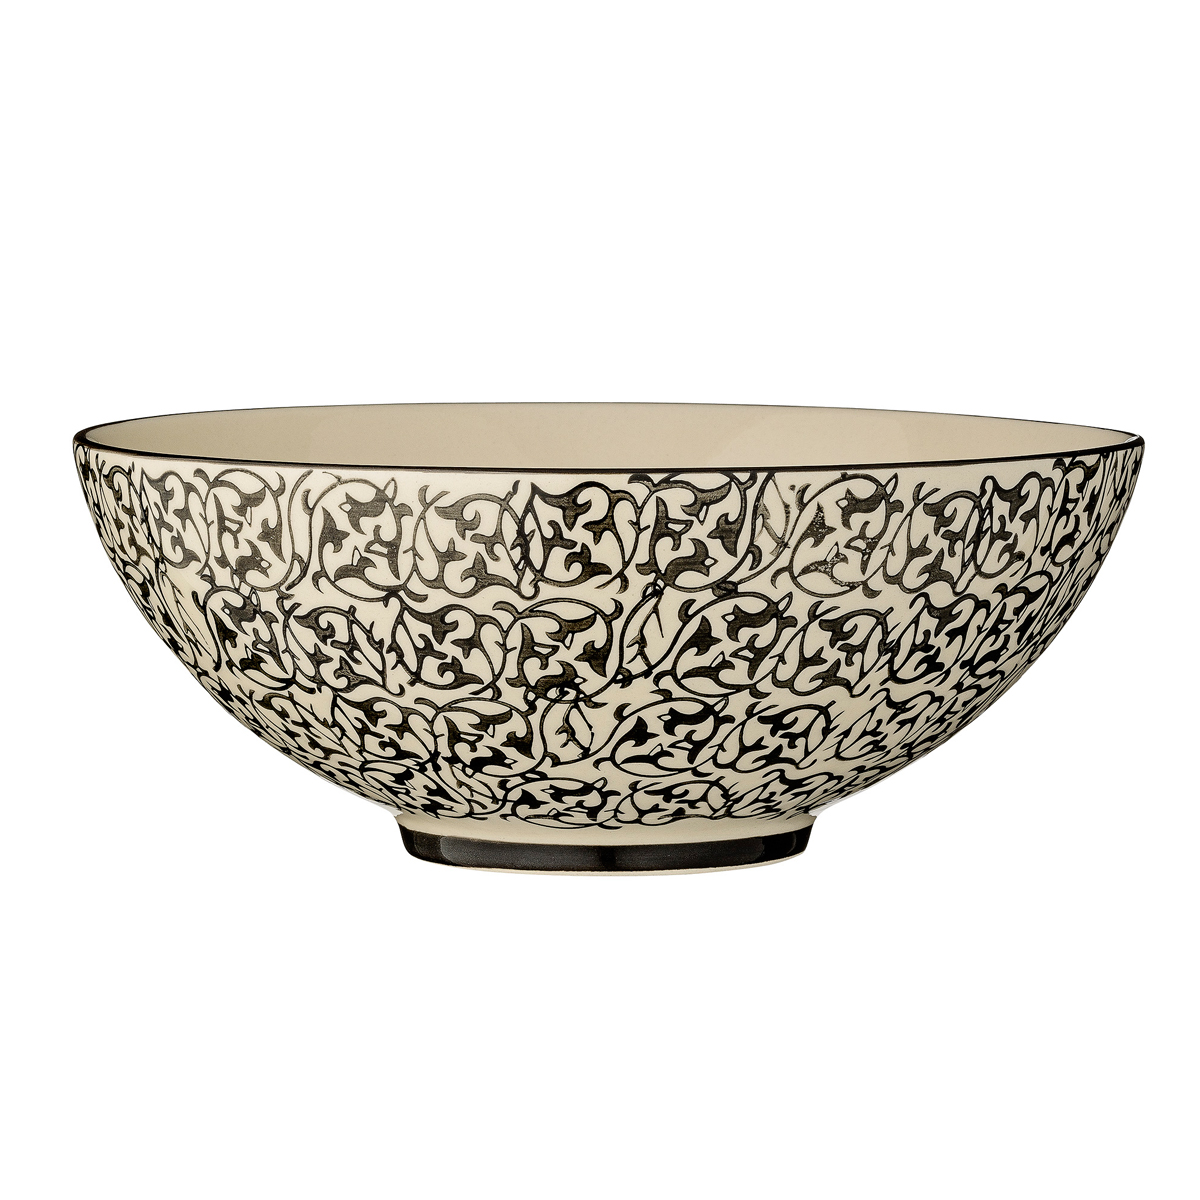 Manda-large-bowl-day-home